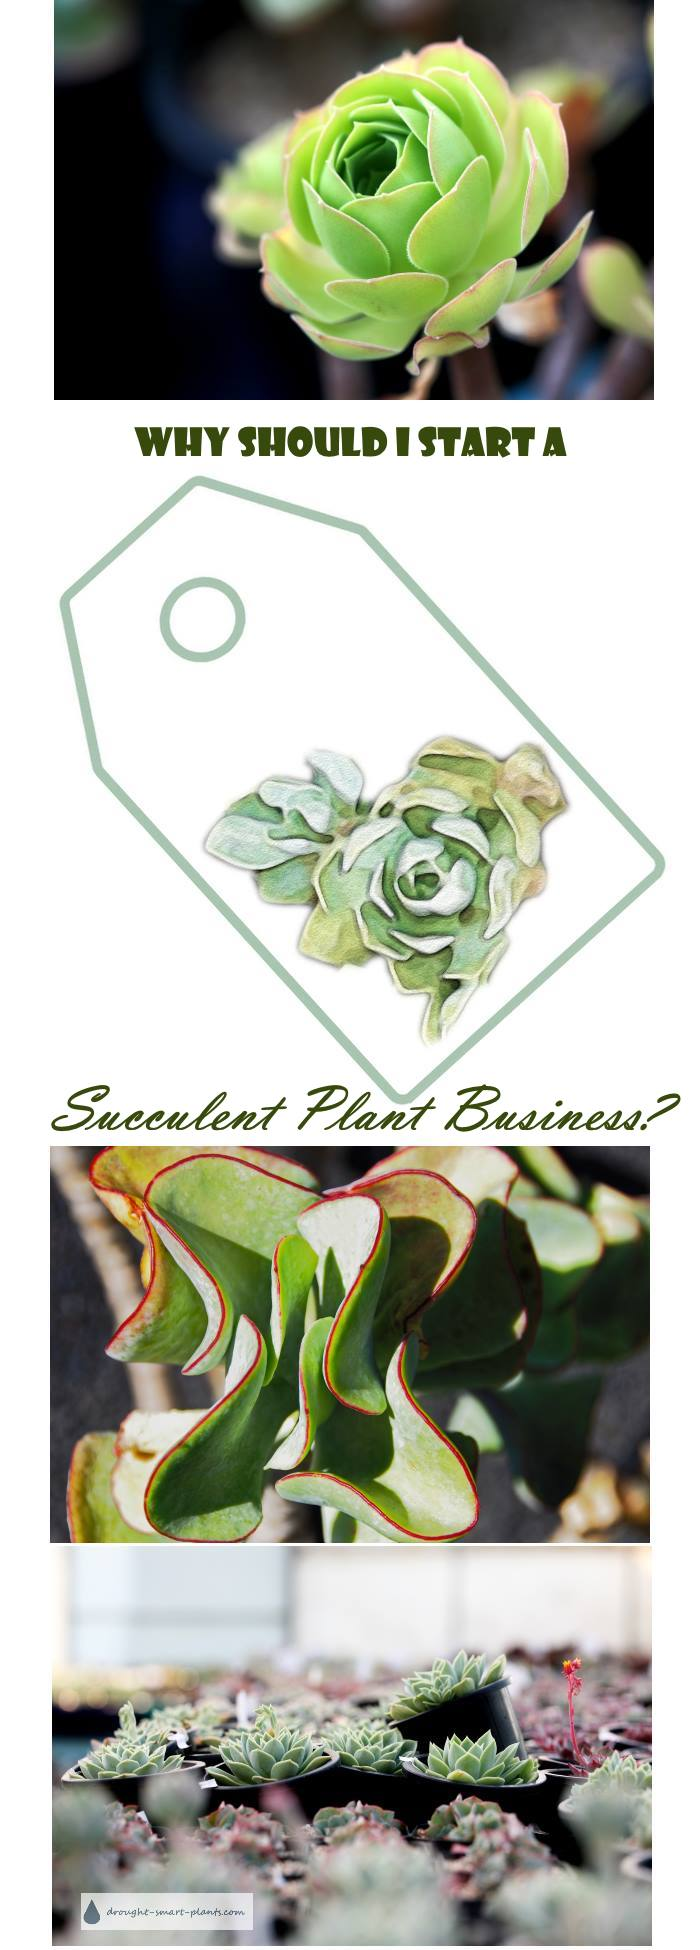 Why Should I Start a Succulent Plant Business? What are the benefits?